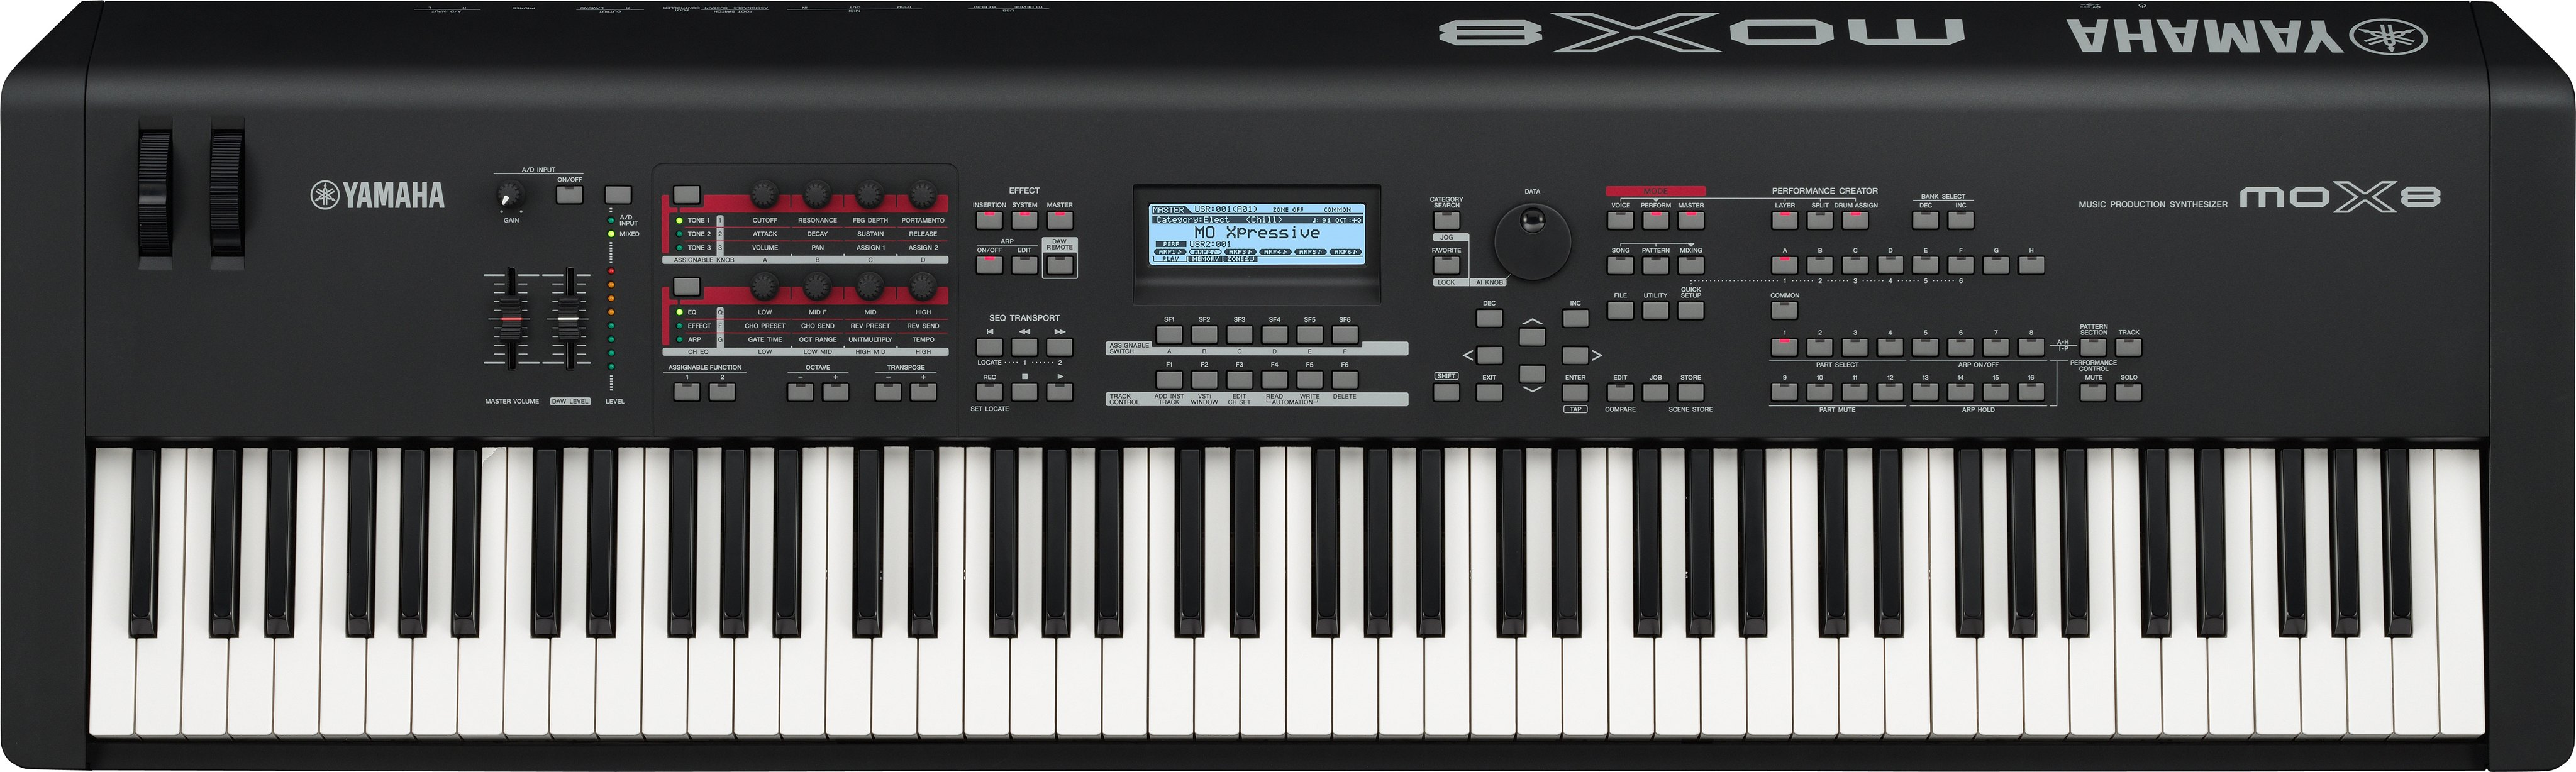 mox series overview synthesizers synthesizers stage pianos products yamaha canada. Black Bedroom Furniture Sets. Home Design Ideas